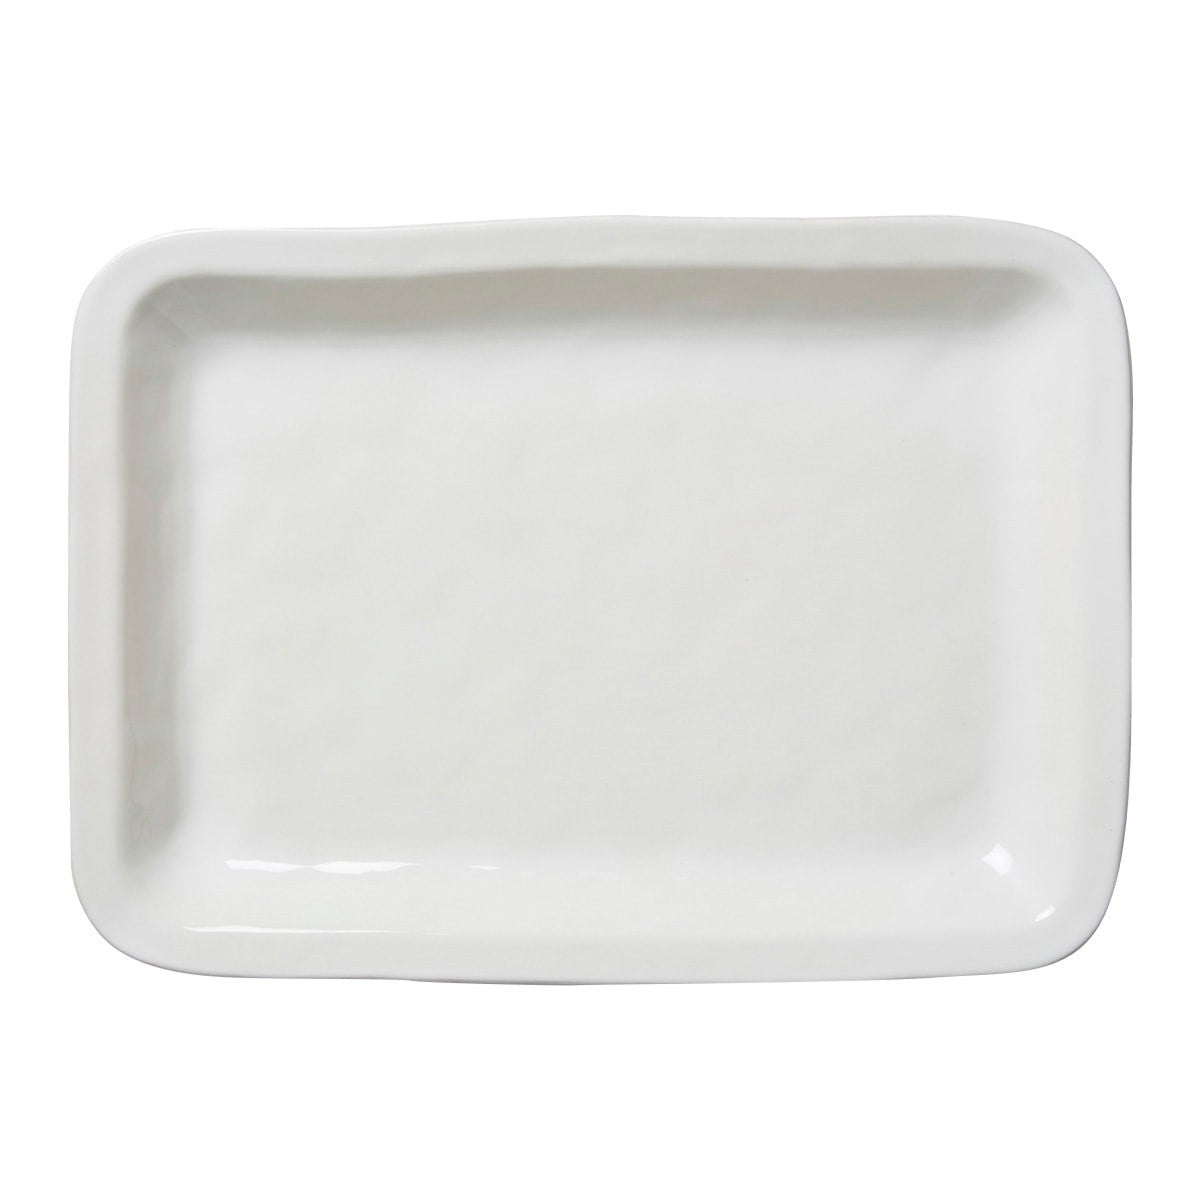 Juliska - Puro Whitewash Rectangular Tray/Platter